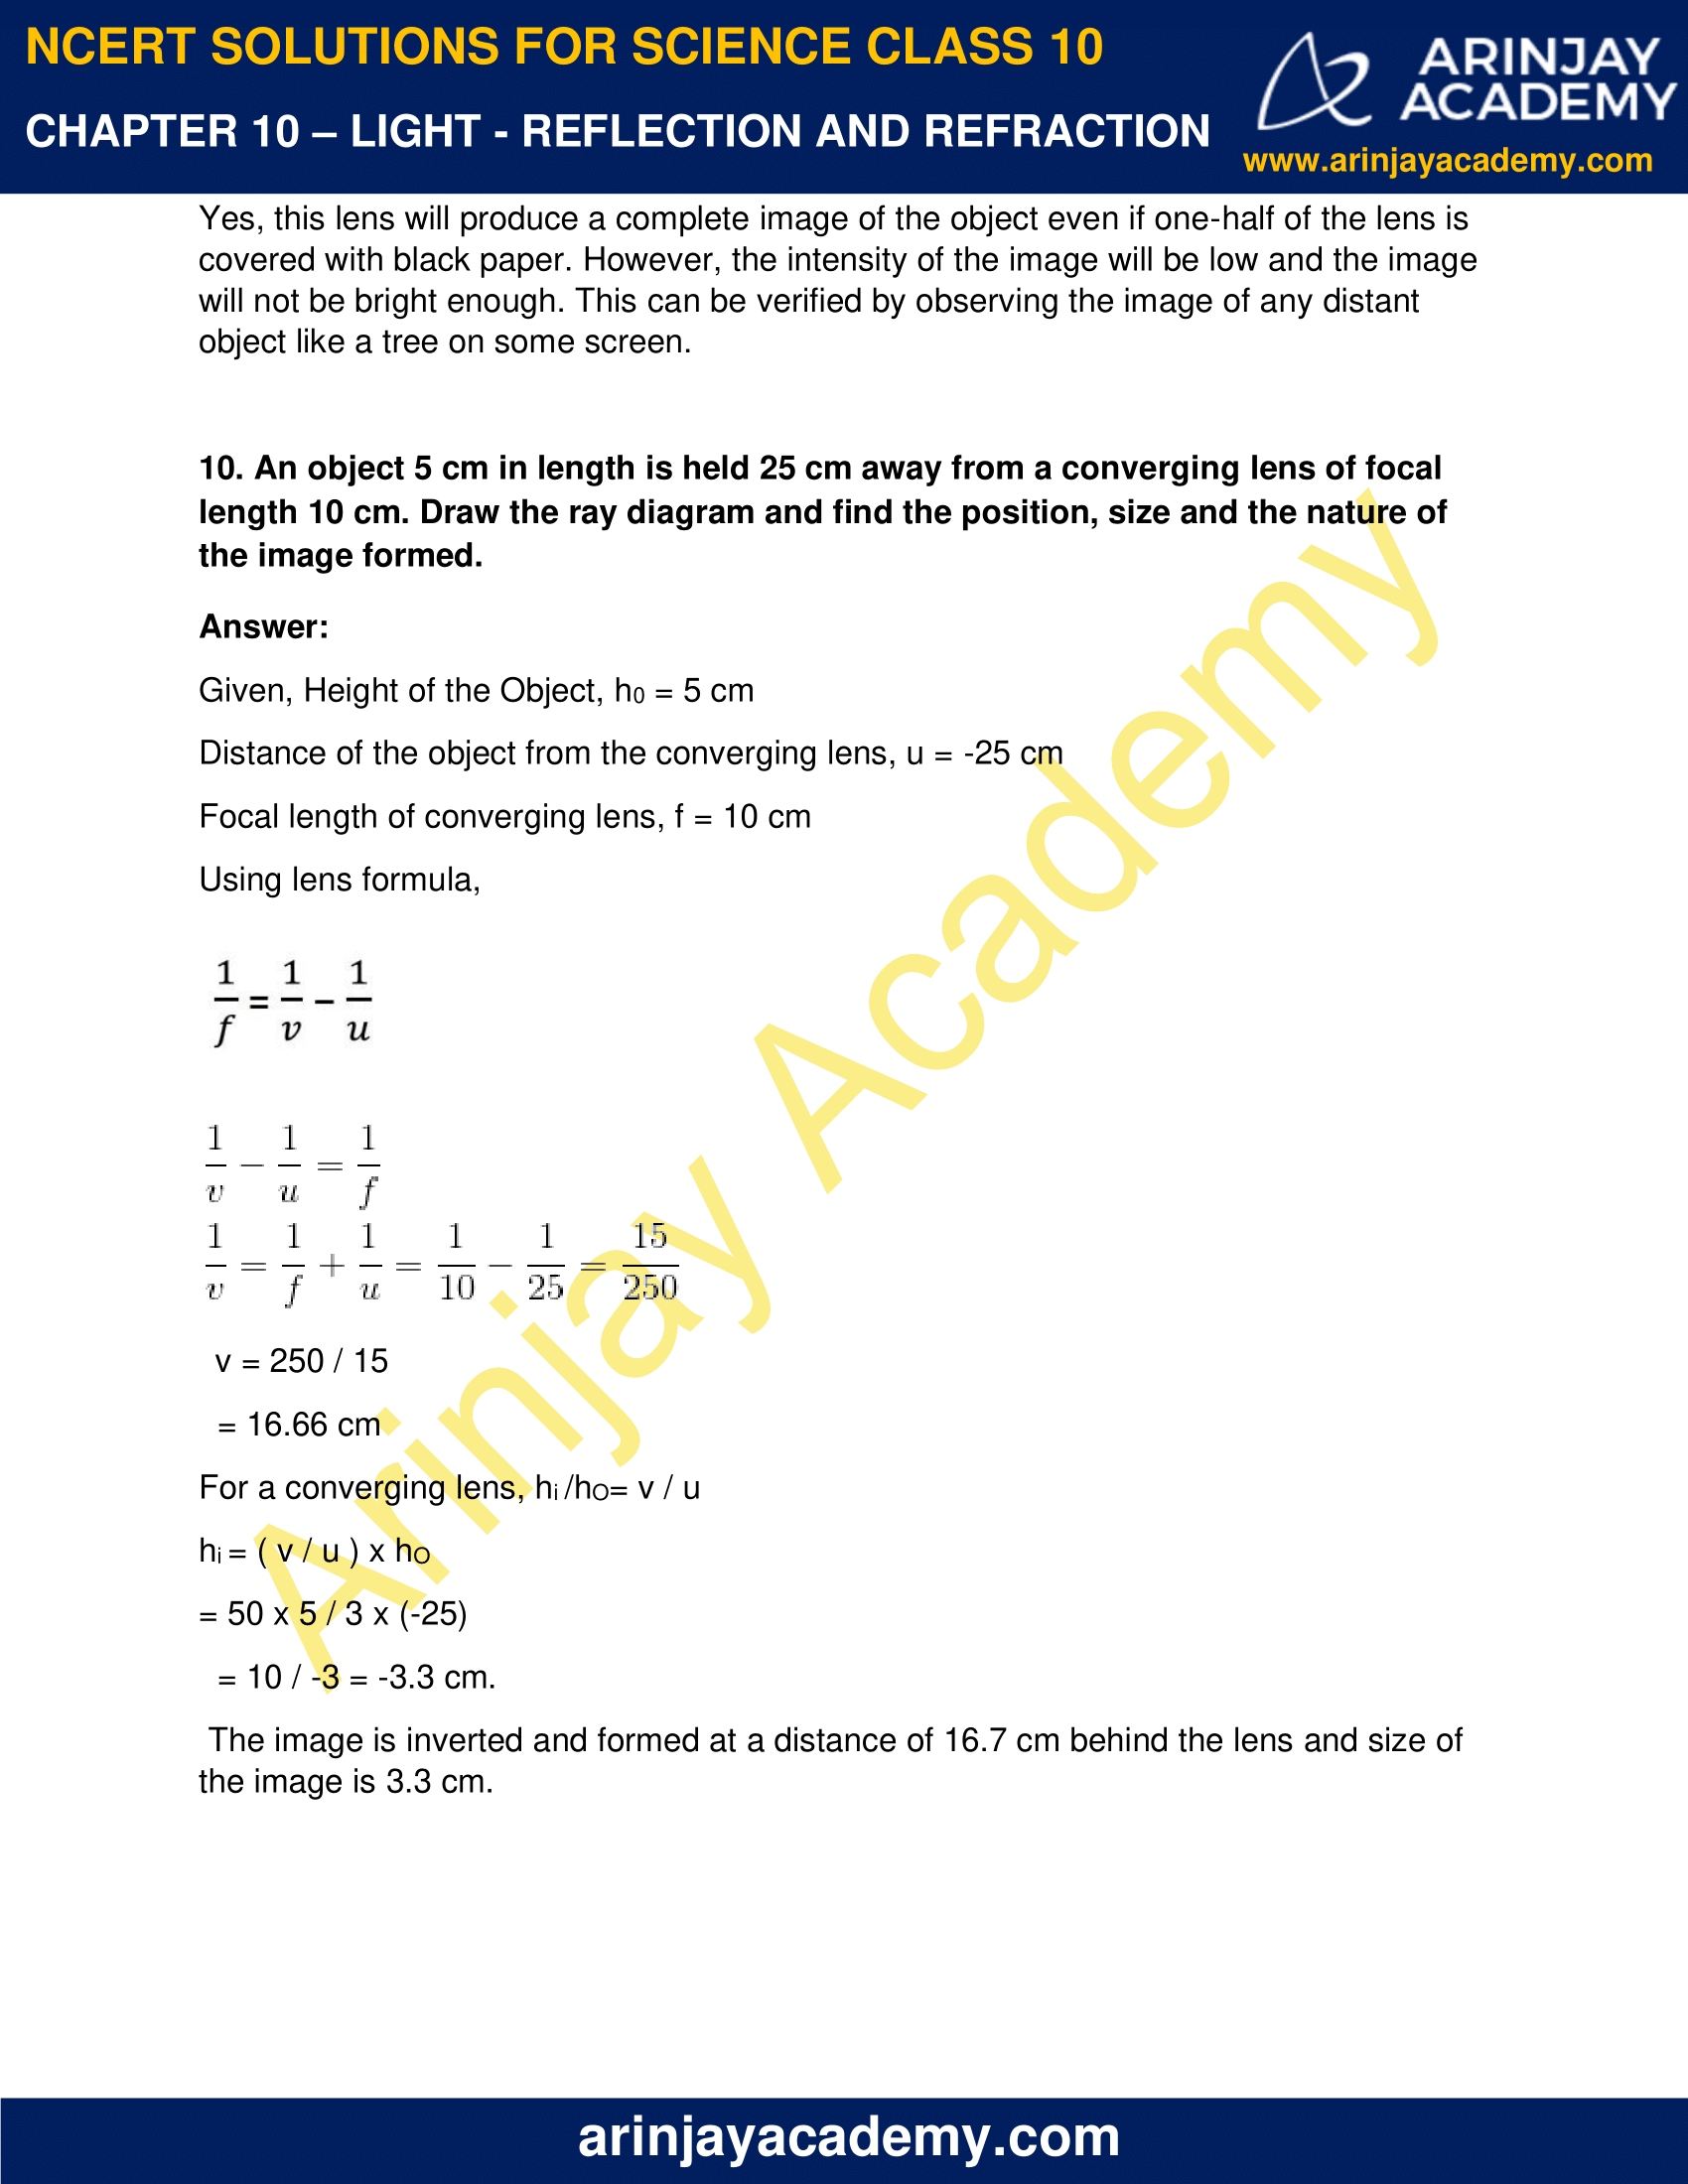 NCERT Solutions for Class 10 Science Chapter 10 image 10